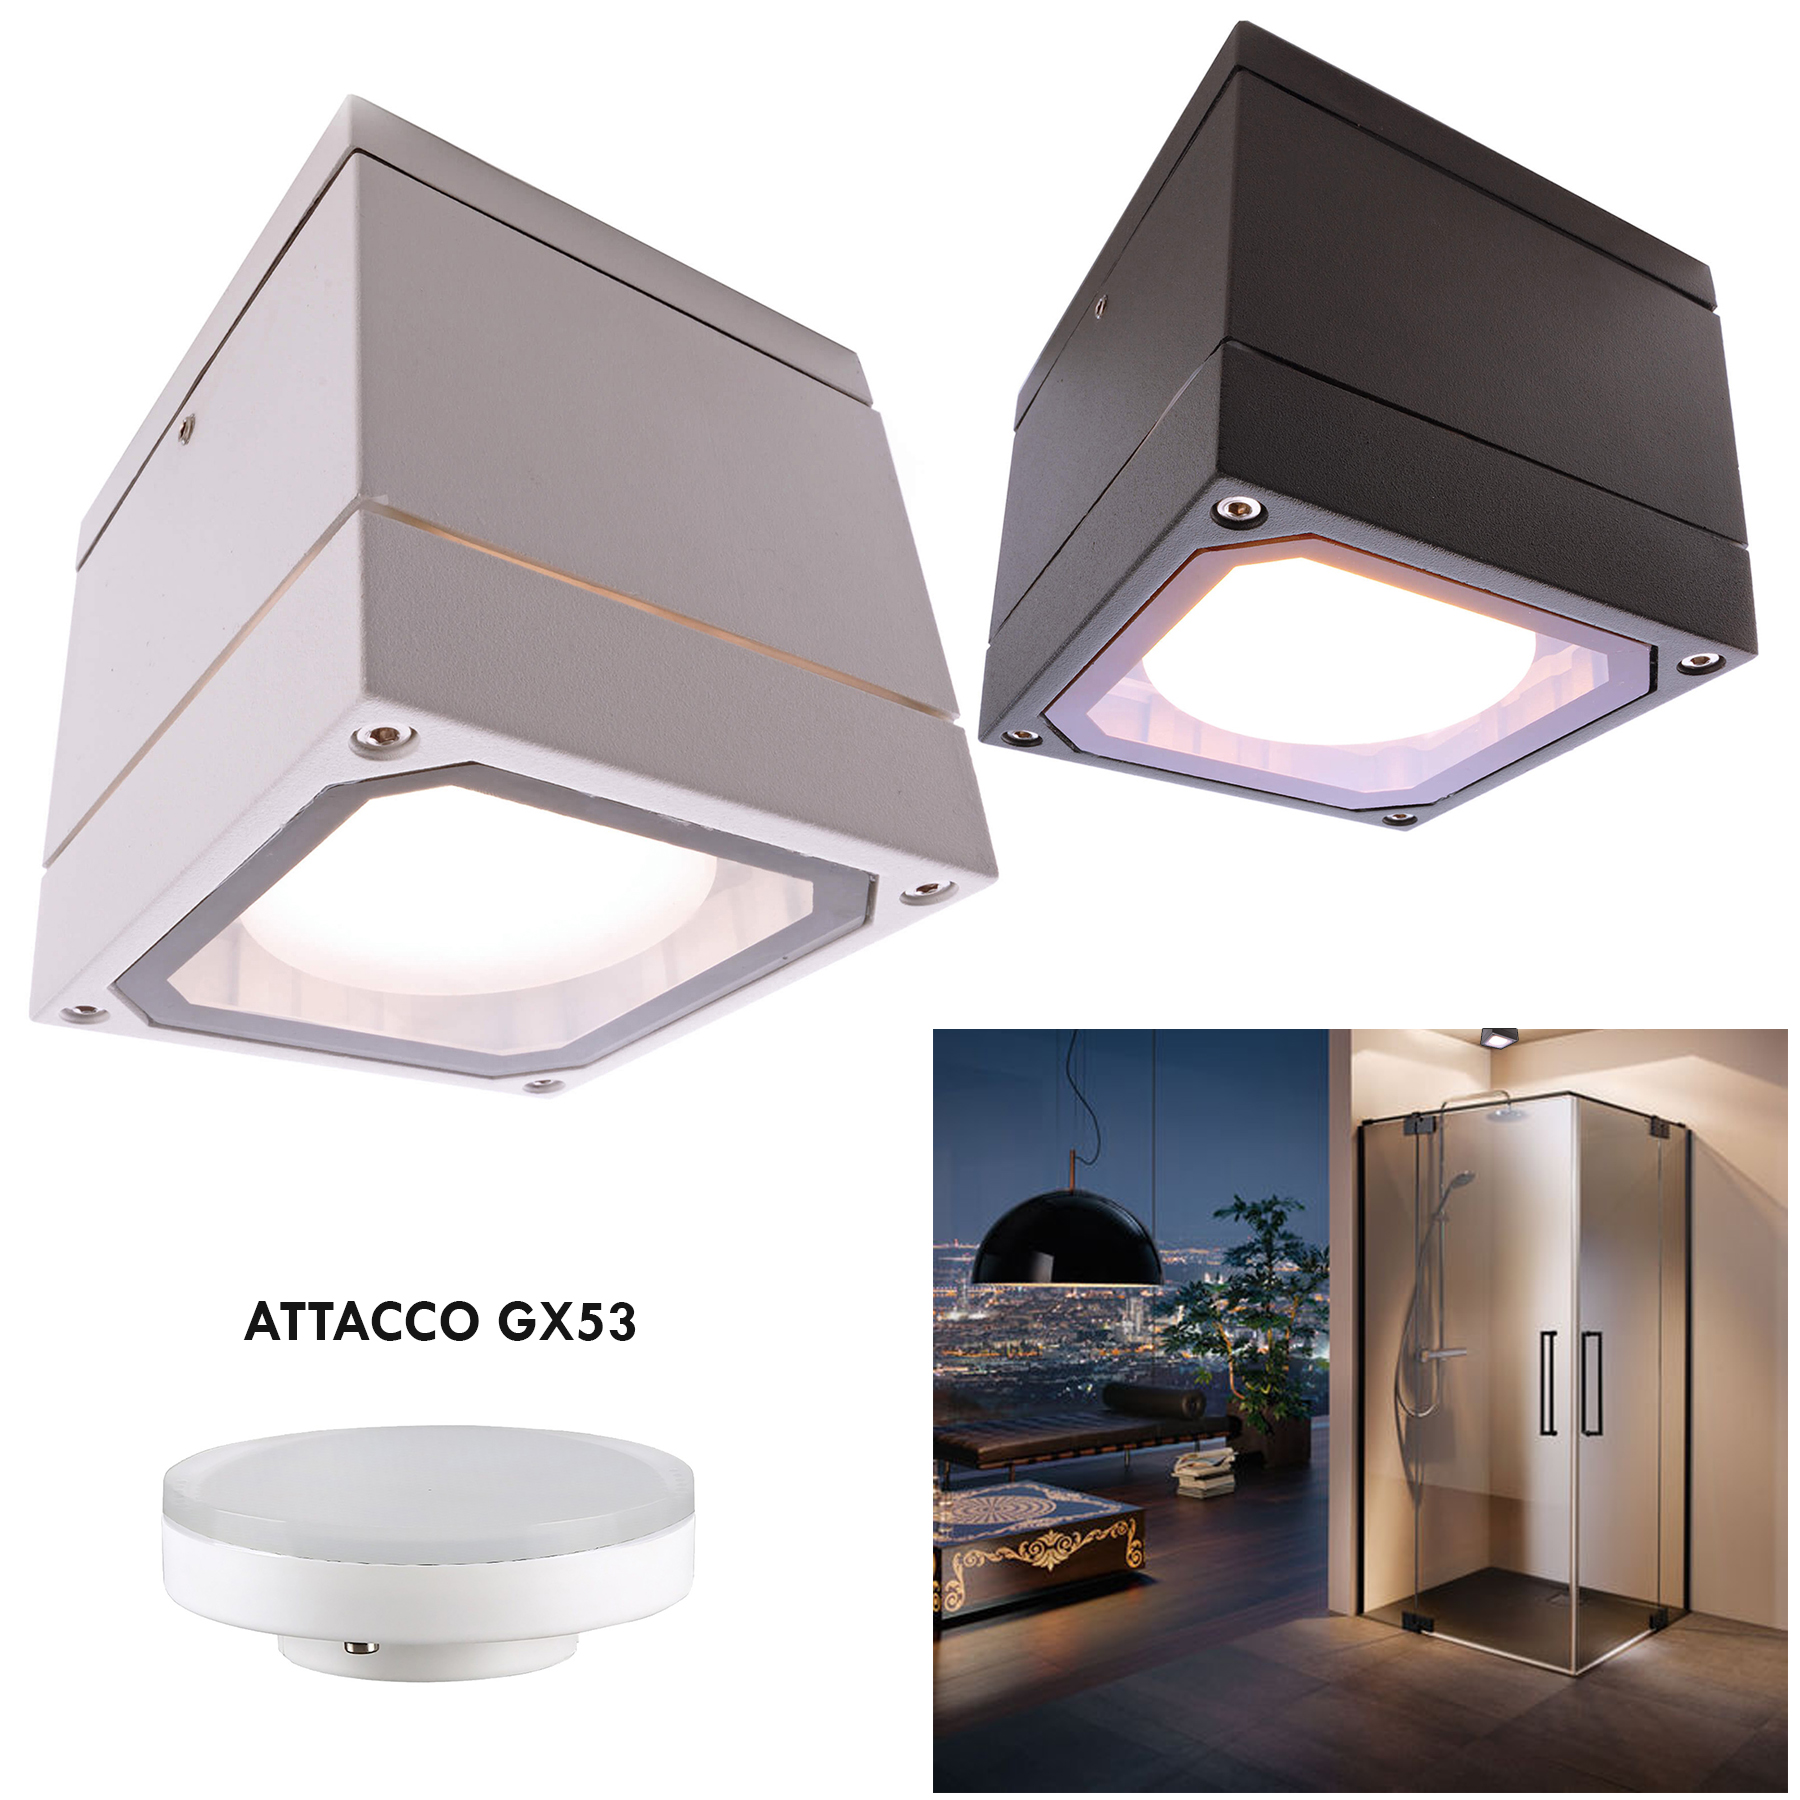 Square spotlight ceiling shower box turkish bath sauna LED lamp 6W GX53 230V